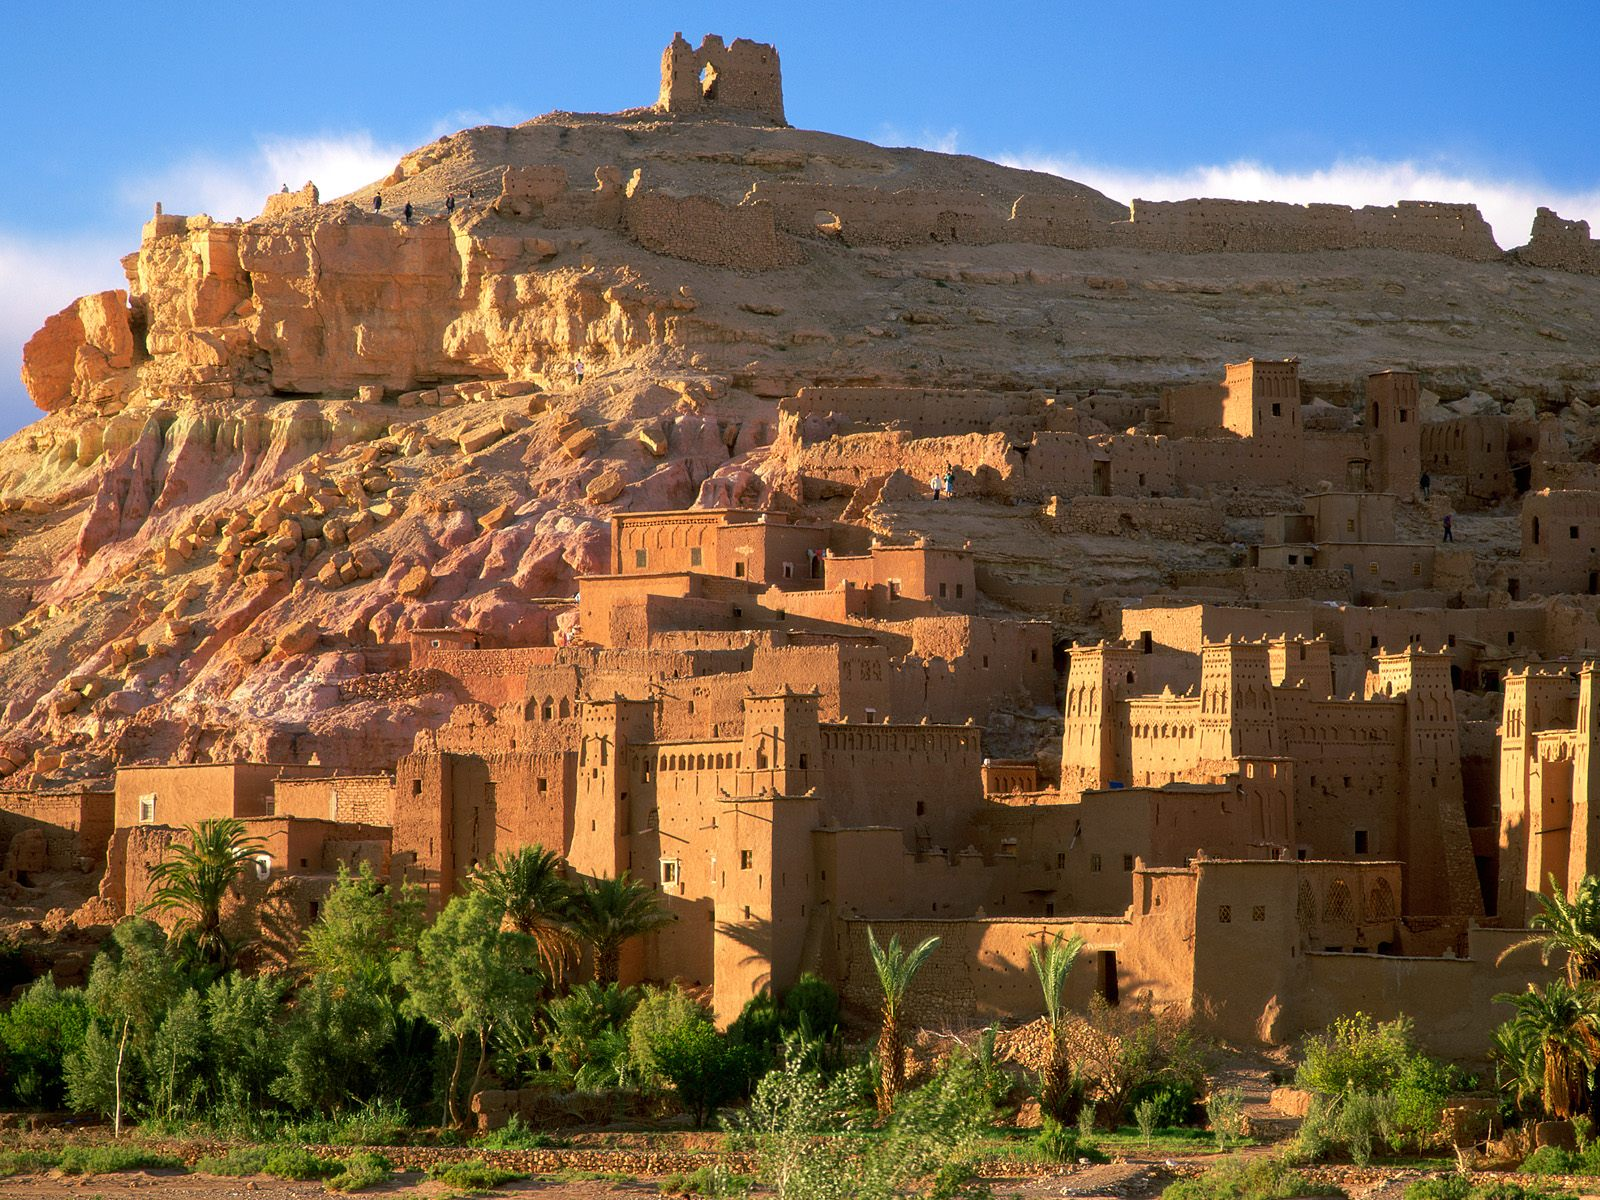 Kasbah-Ruins-Wallpaper-Ait-Benhaddou-Morocco-Africa-Free-desktop-wallpapers-download-16001200